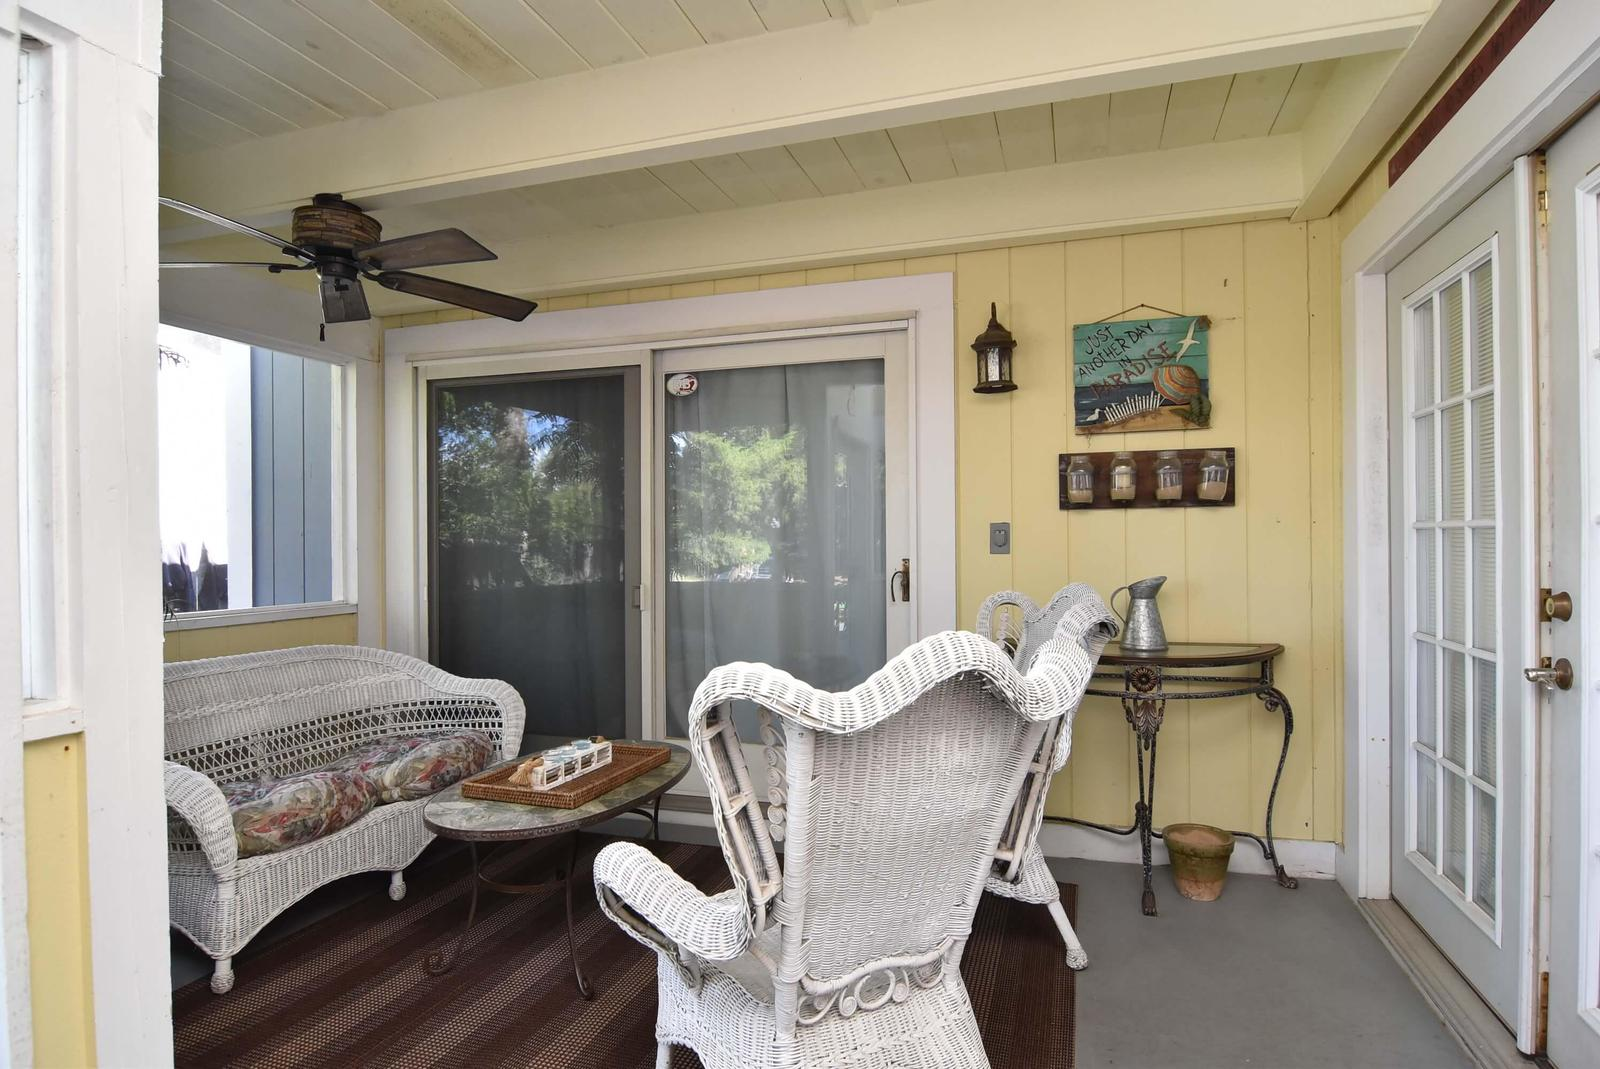 Several seating areas on the porch allow for great visiting with family and friends!